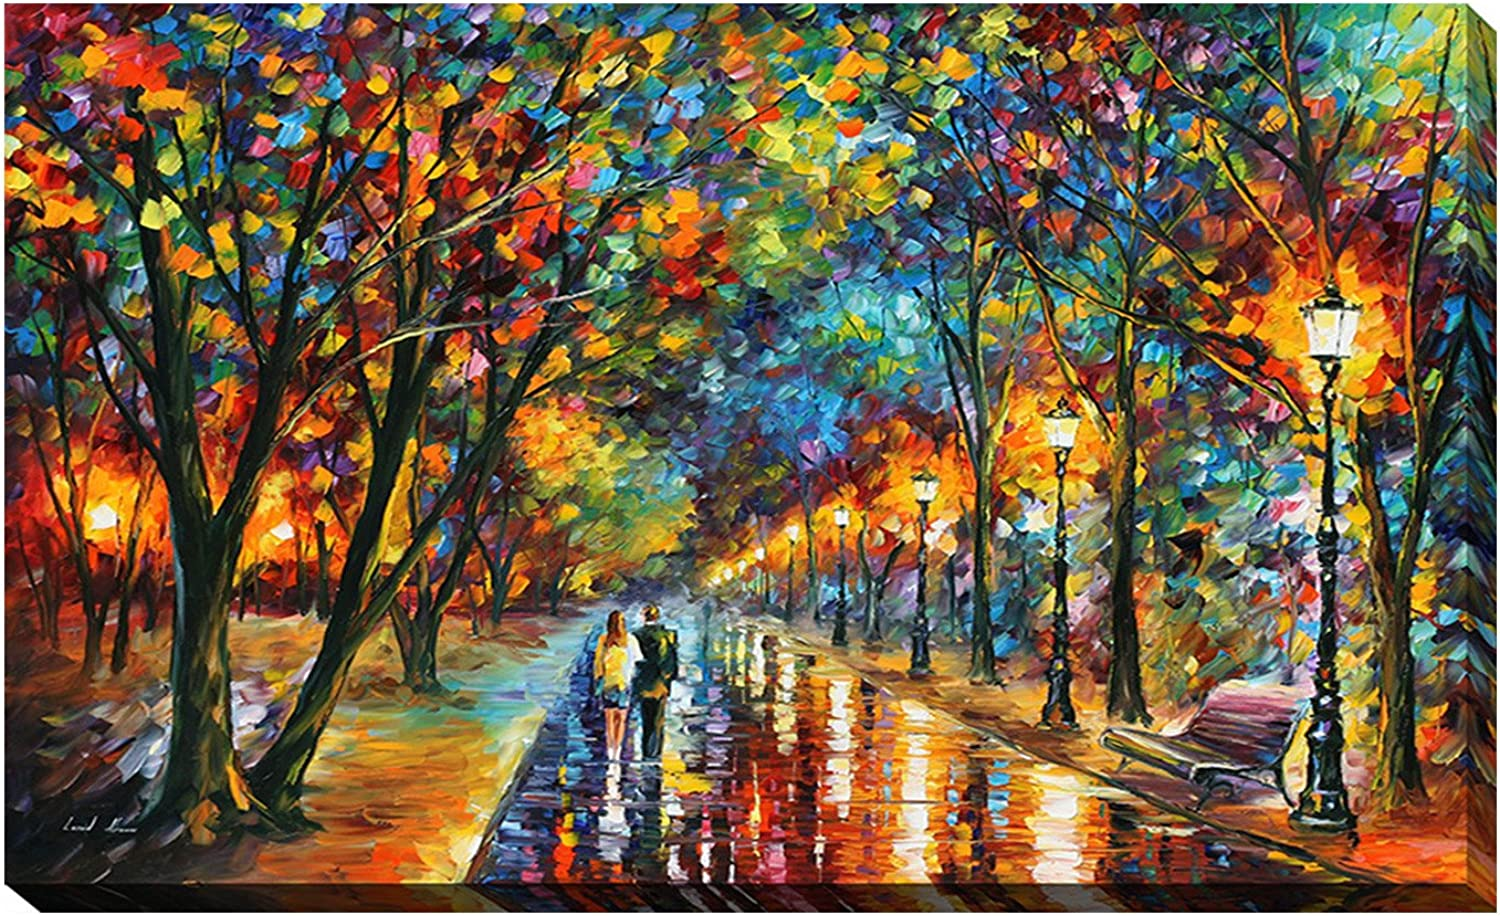 Picture Perfect International Giclee Stretched Wall Art by Leonid Afremov When The Dreams Came True Artists-Canvas, 18  x 30  x 1